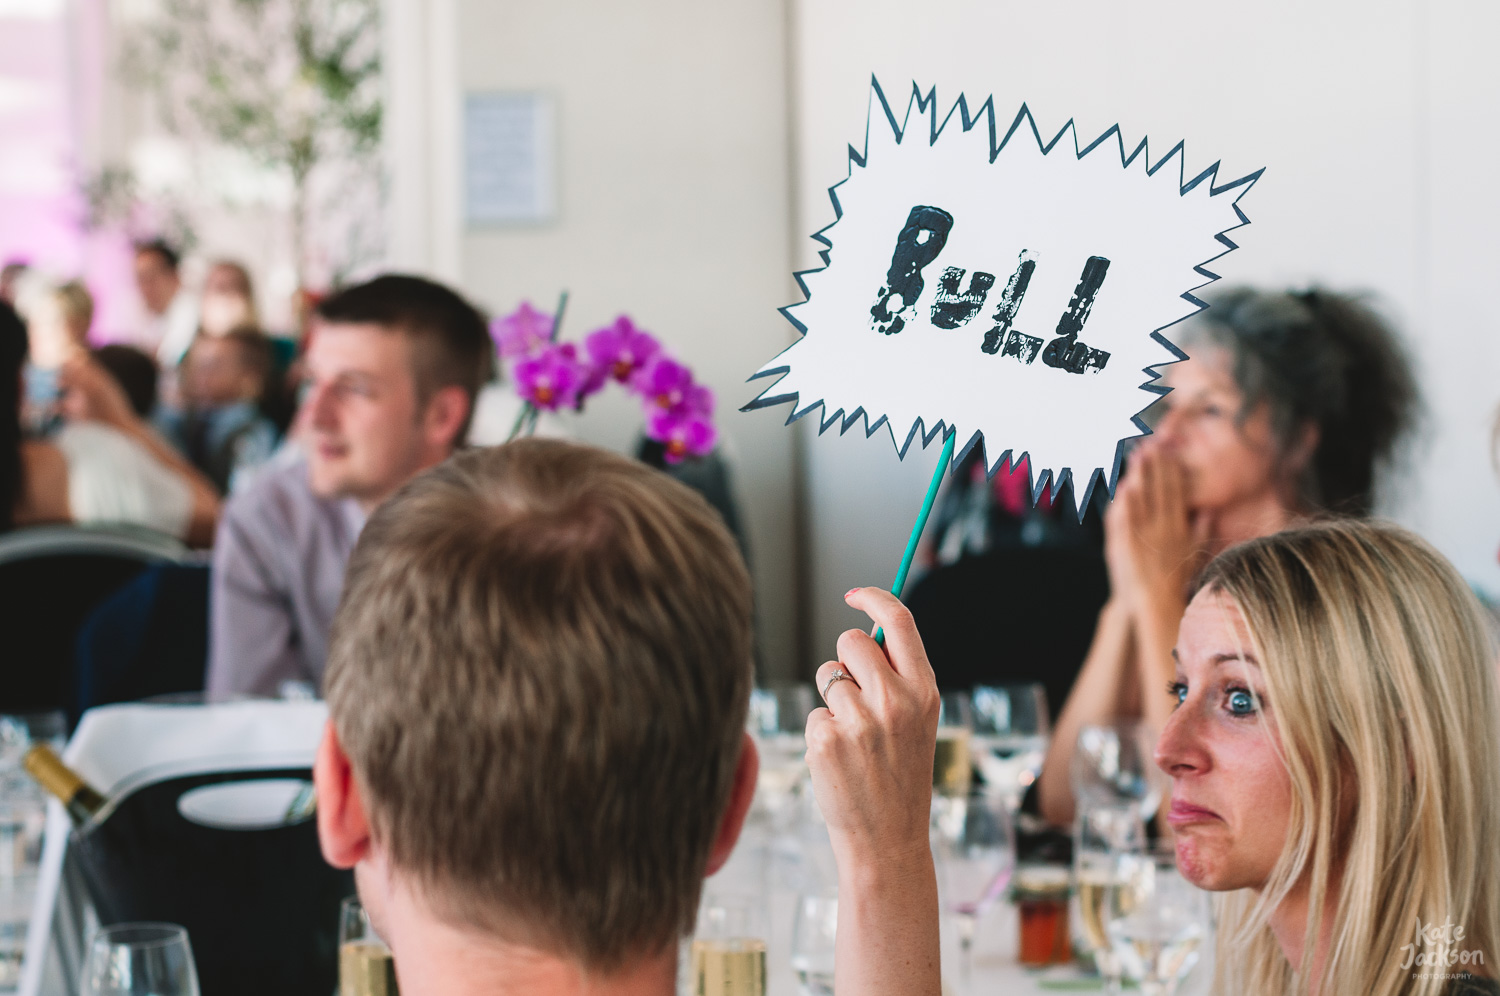 Wedding guest holds up 'Bull' sign with a funny expression on her face during 'fact or bull' wedding game at Millennium Gallery in Sheffield